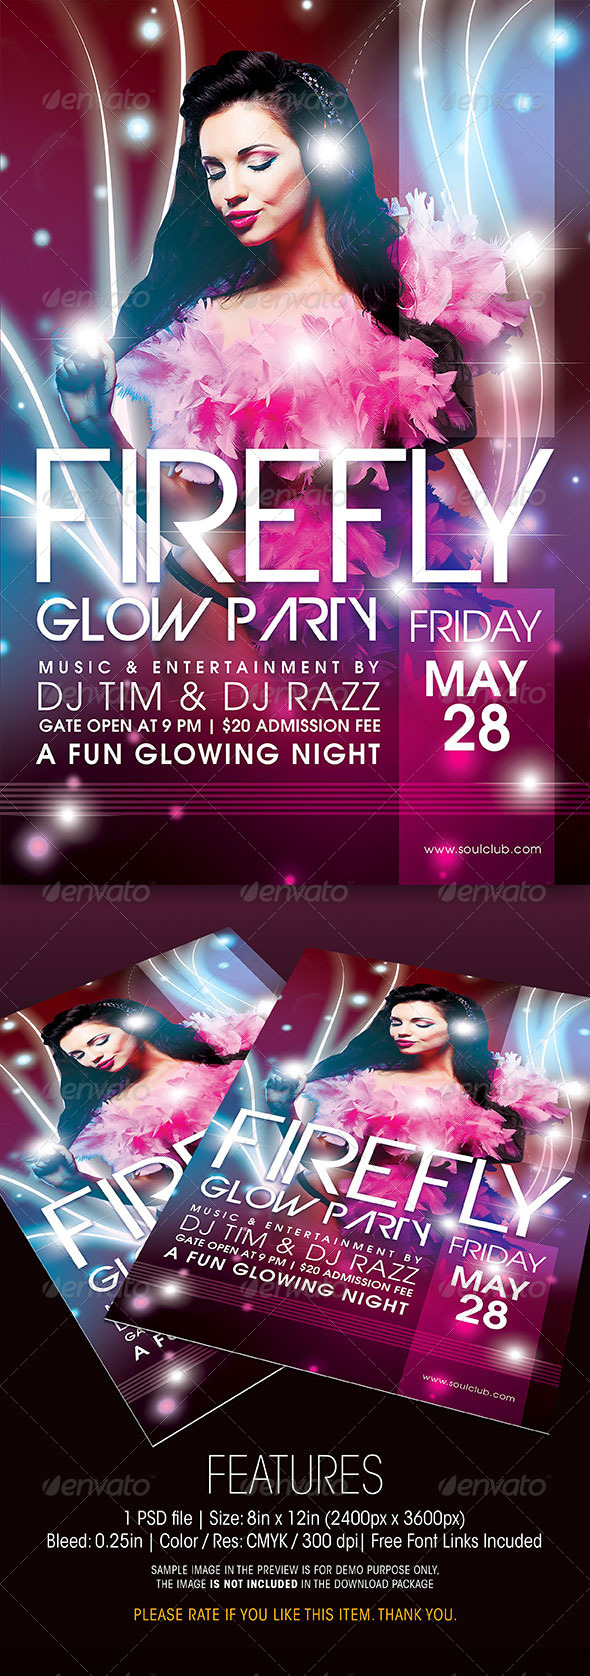 GraphicRiver Firefly Glow Party Flyer 6436520